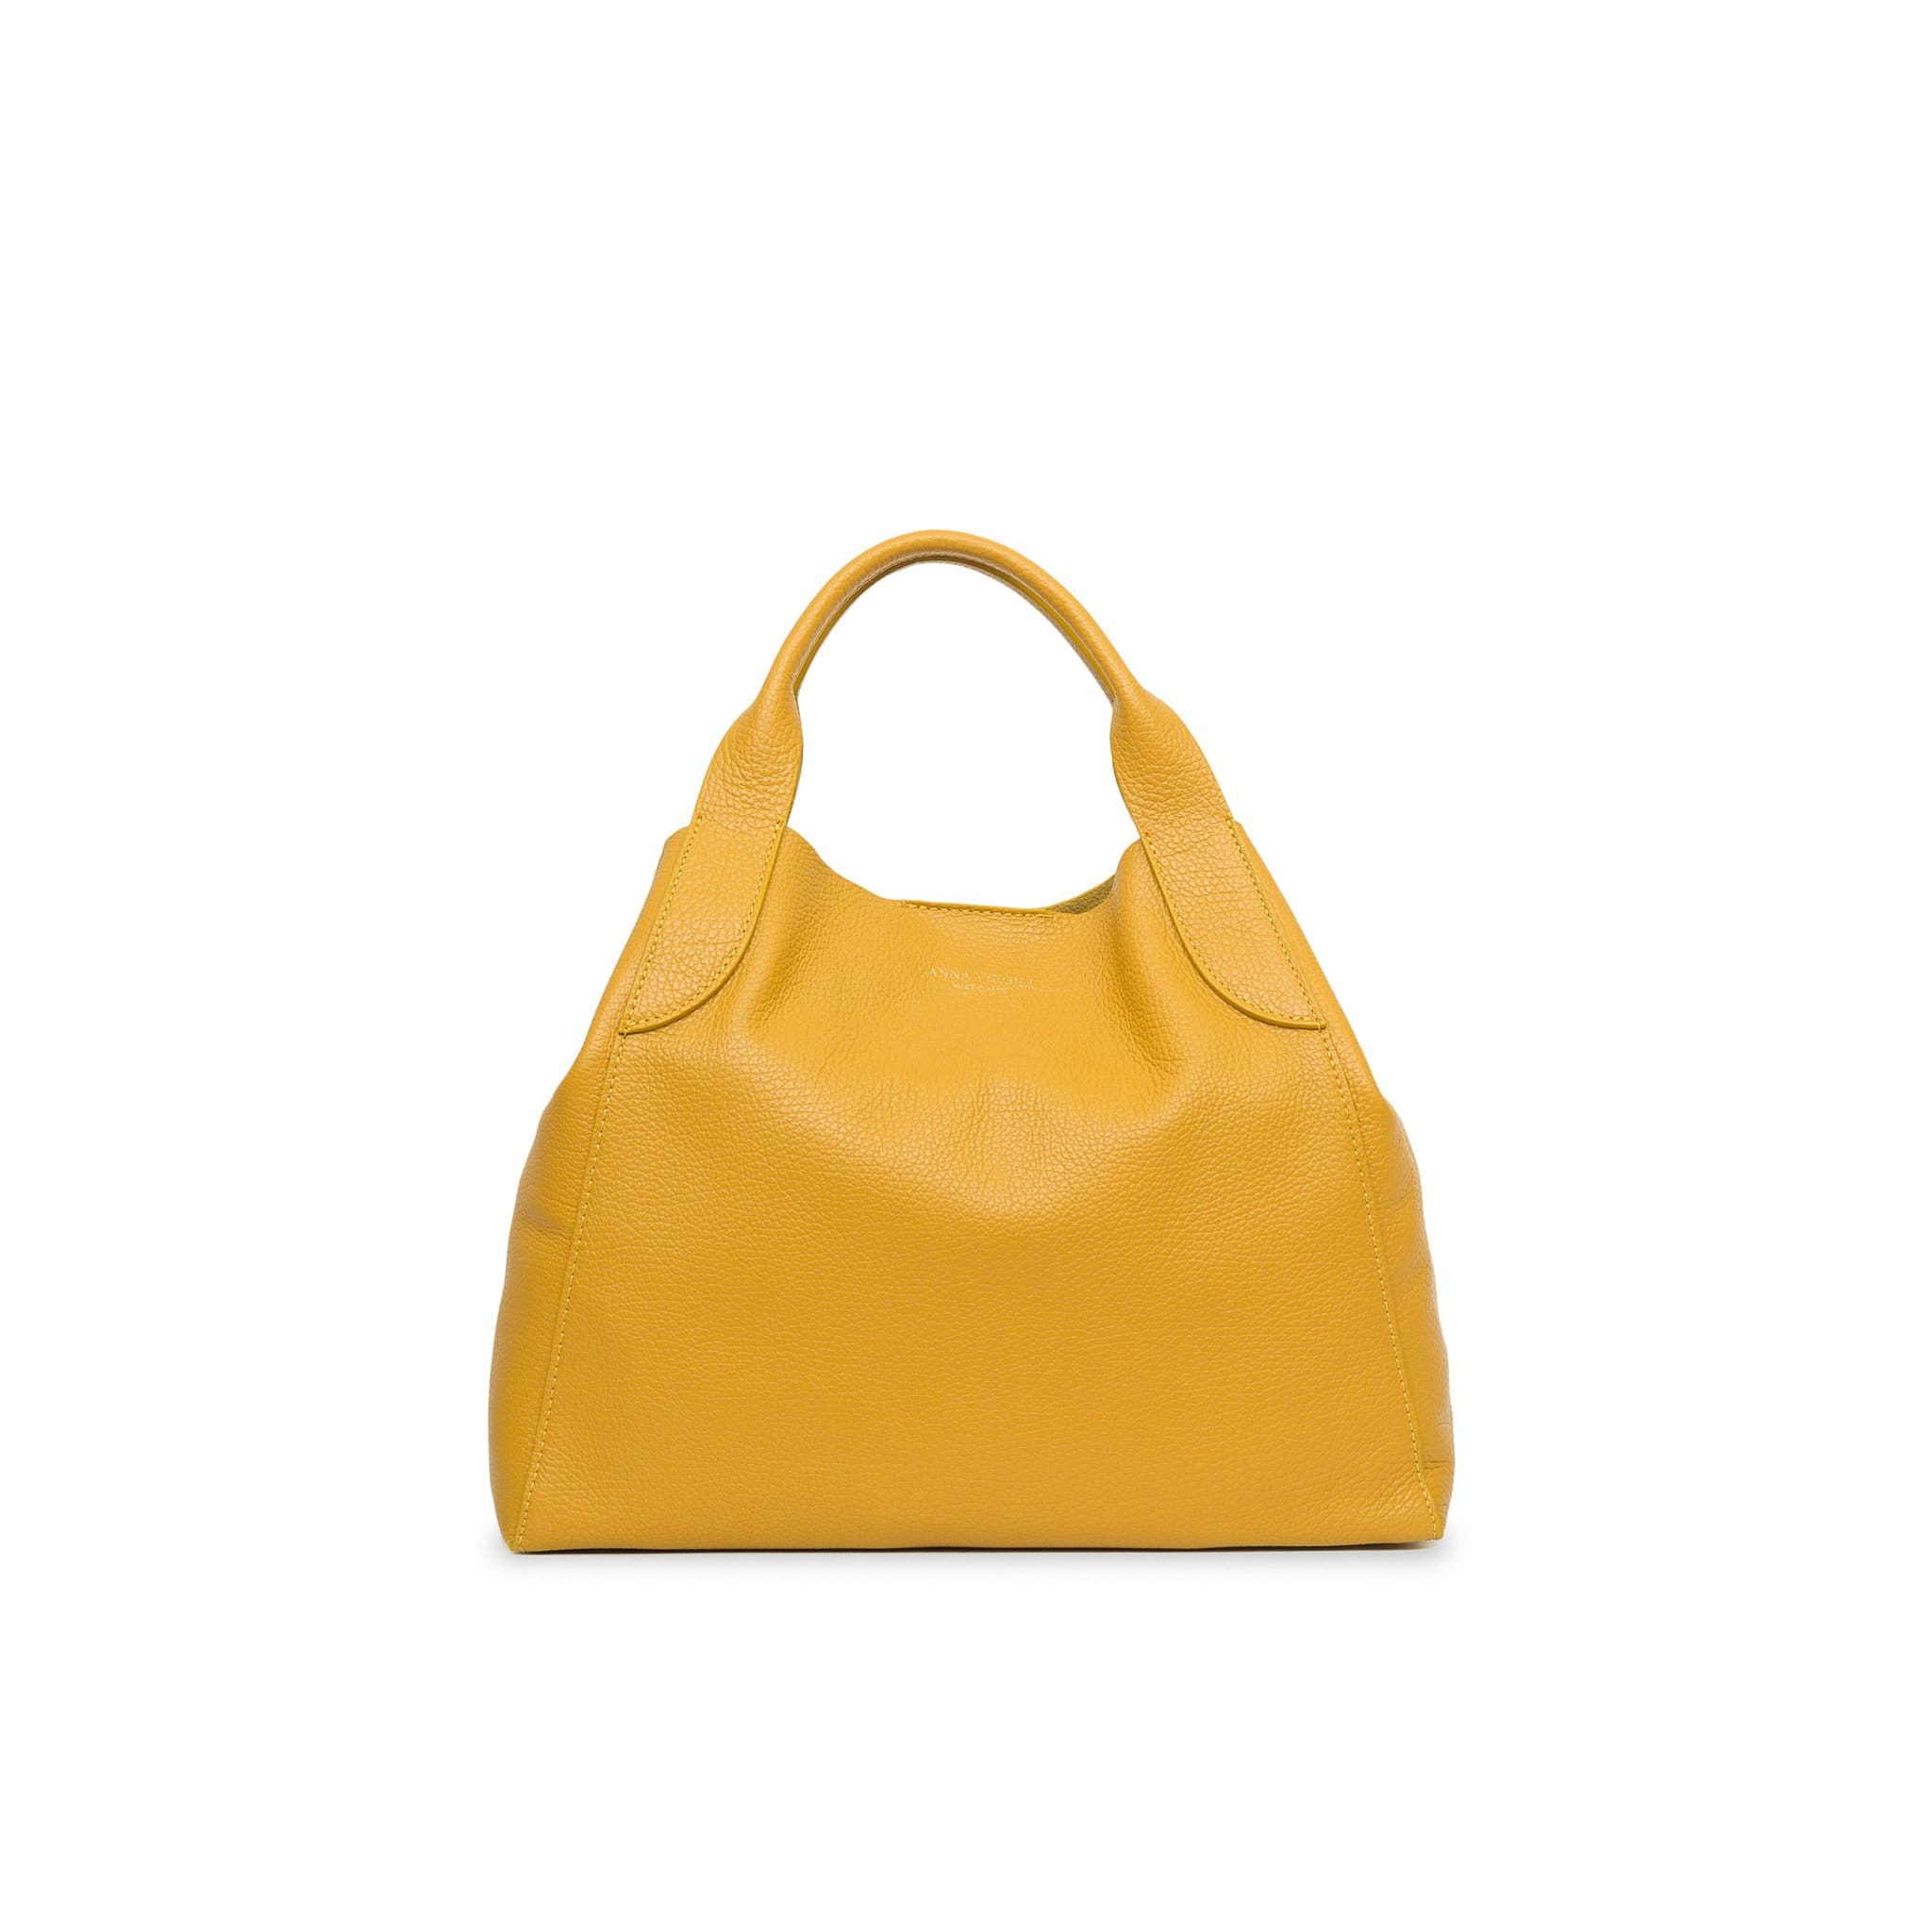 Alice Mini Palermo Leather Handbag - Ochre